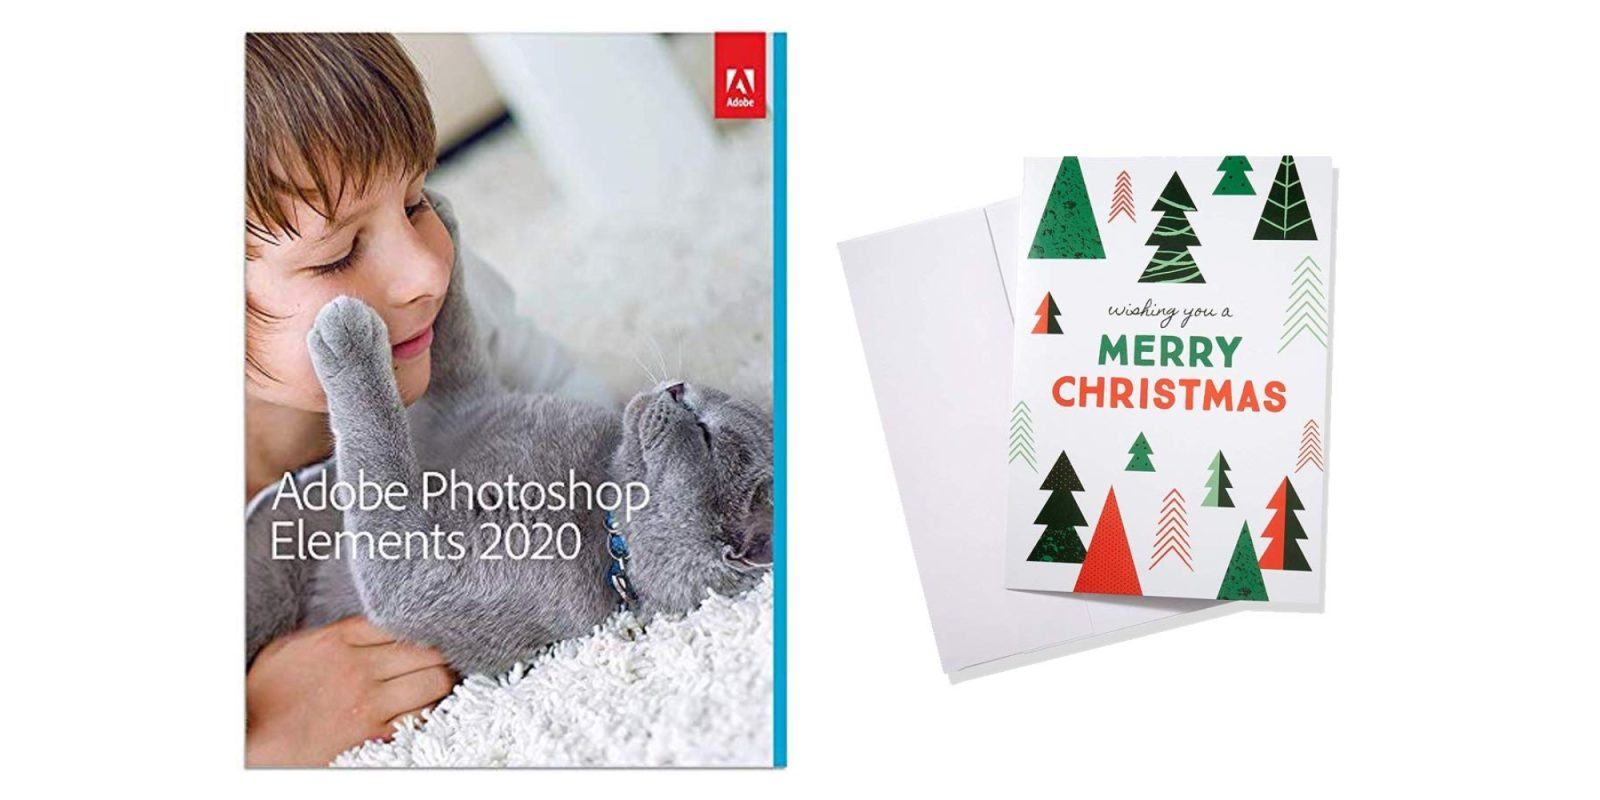 Score Adobe Photoshop Elements 2020 for $56 and get a free $10 GC ($110 value)